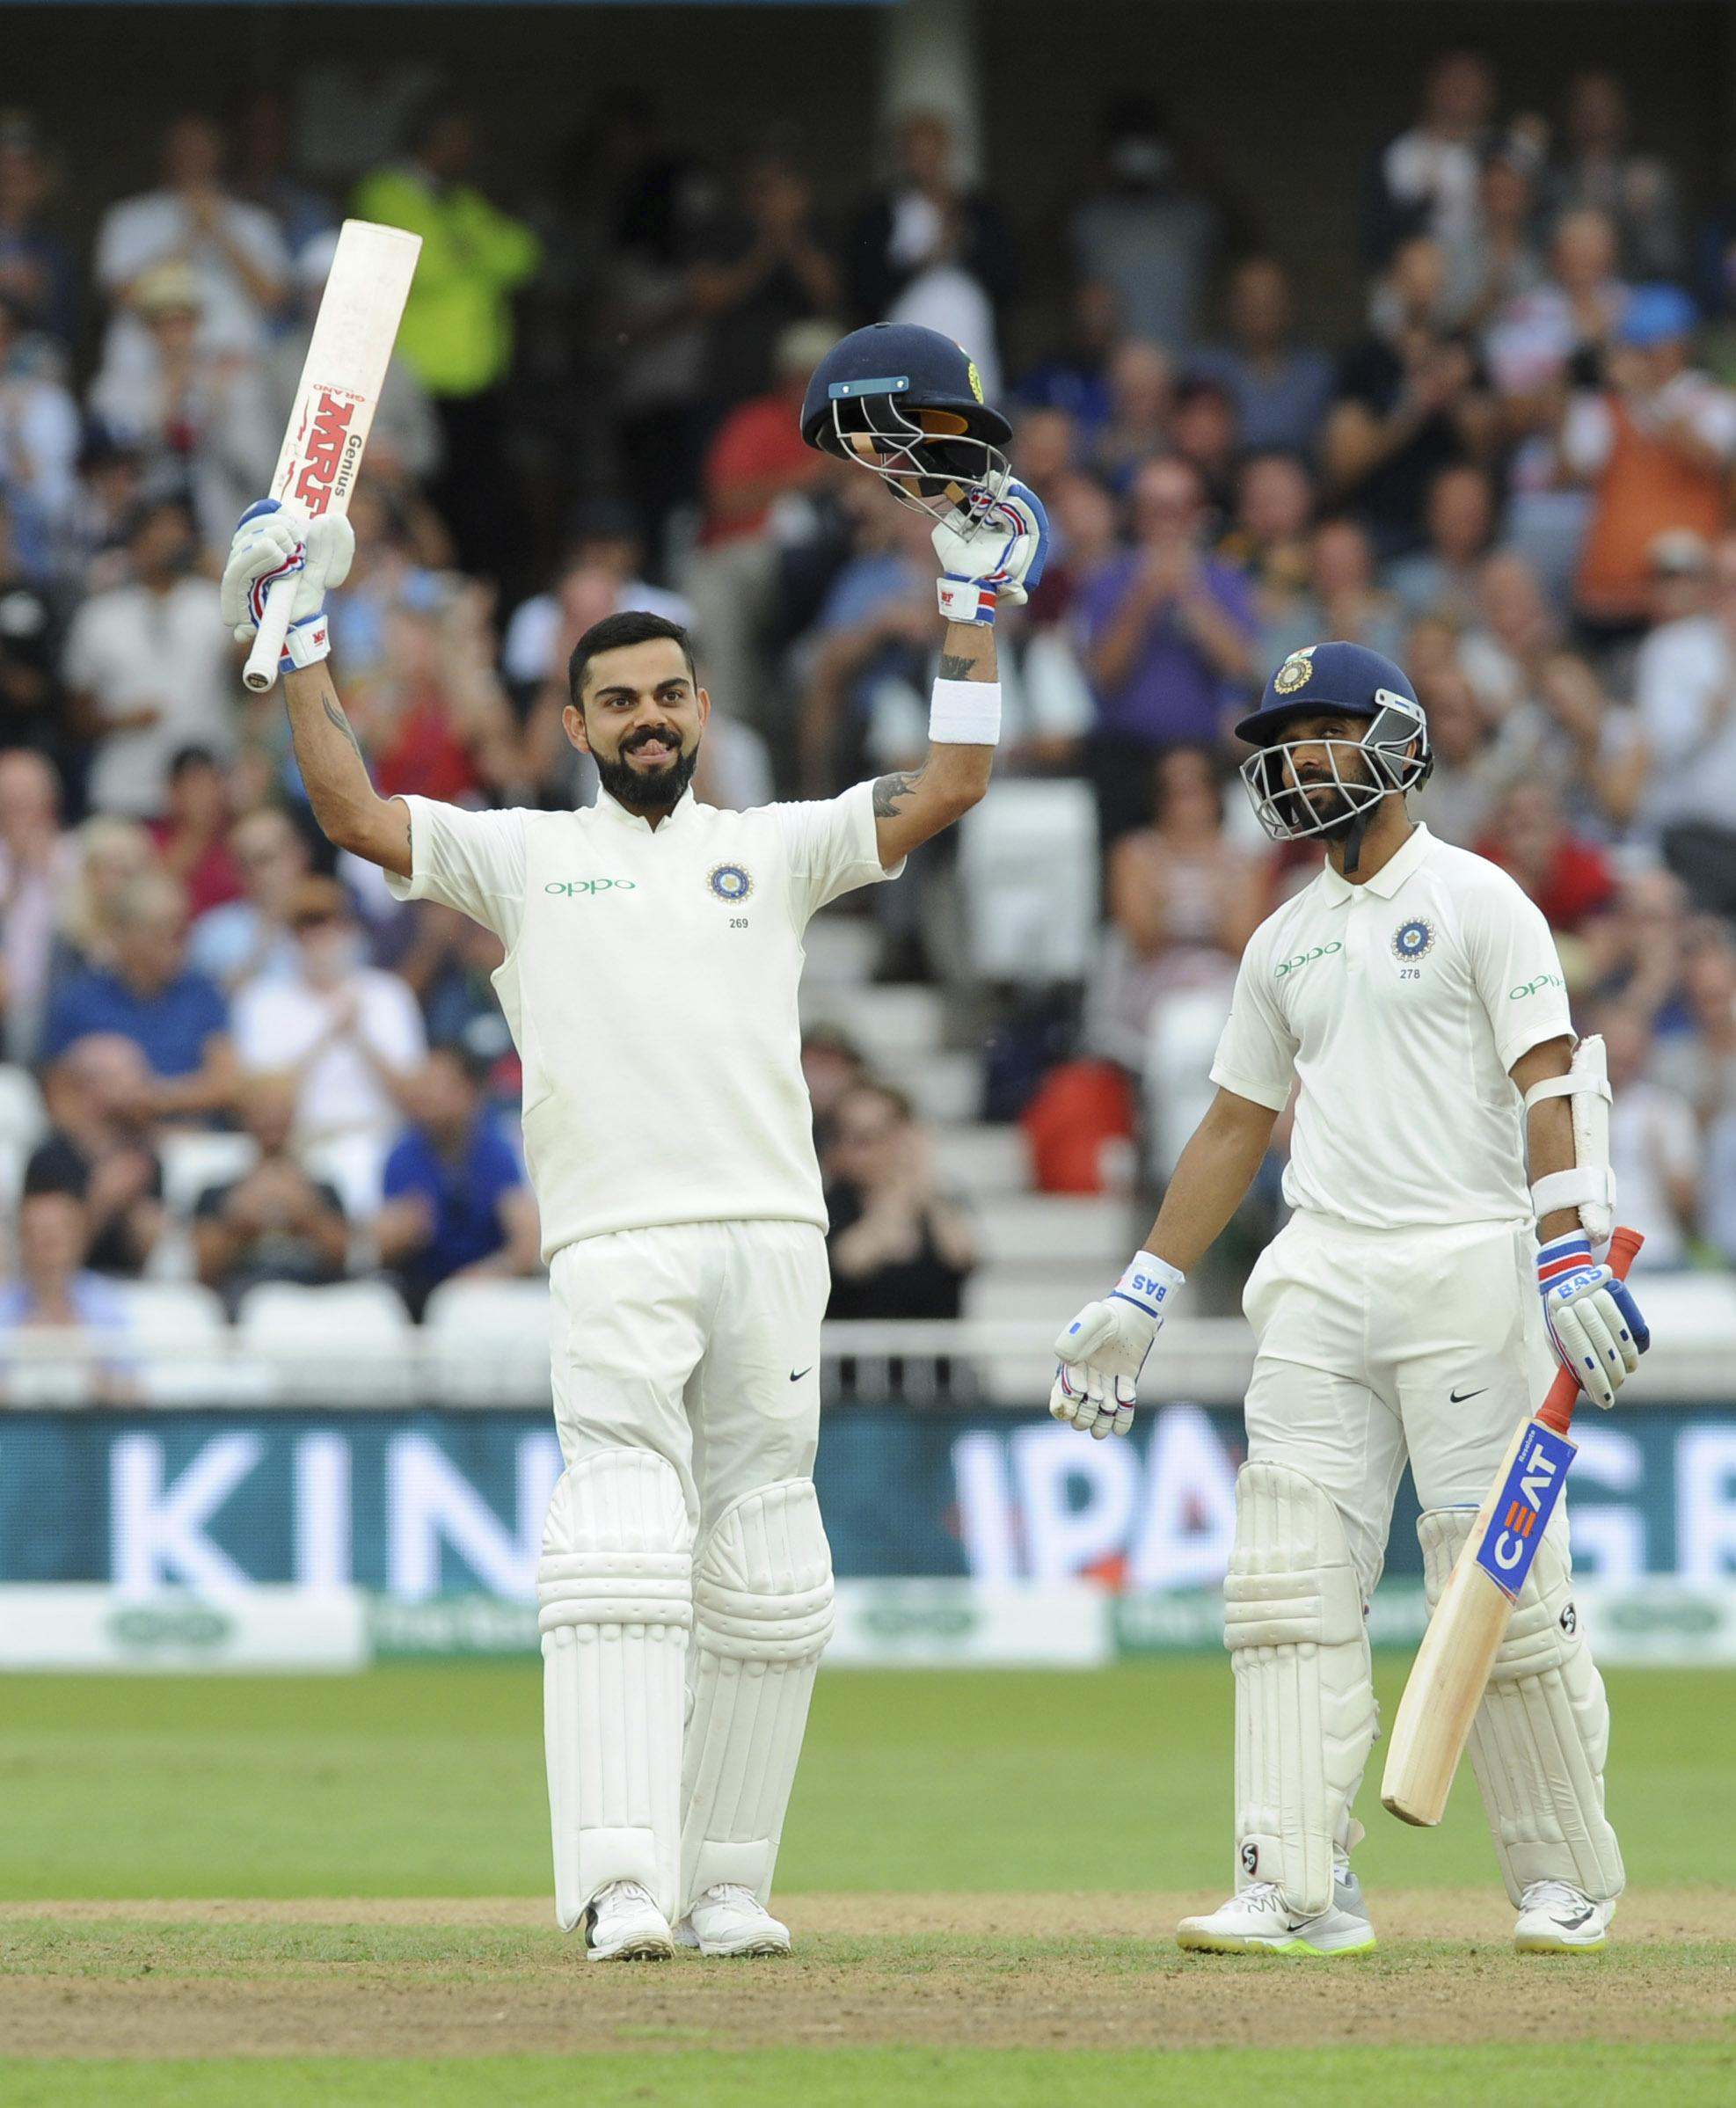 Virat Kohli has emphatically removed any doubts about his ability to score runs in England